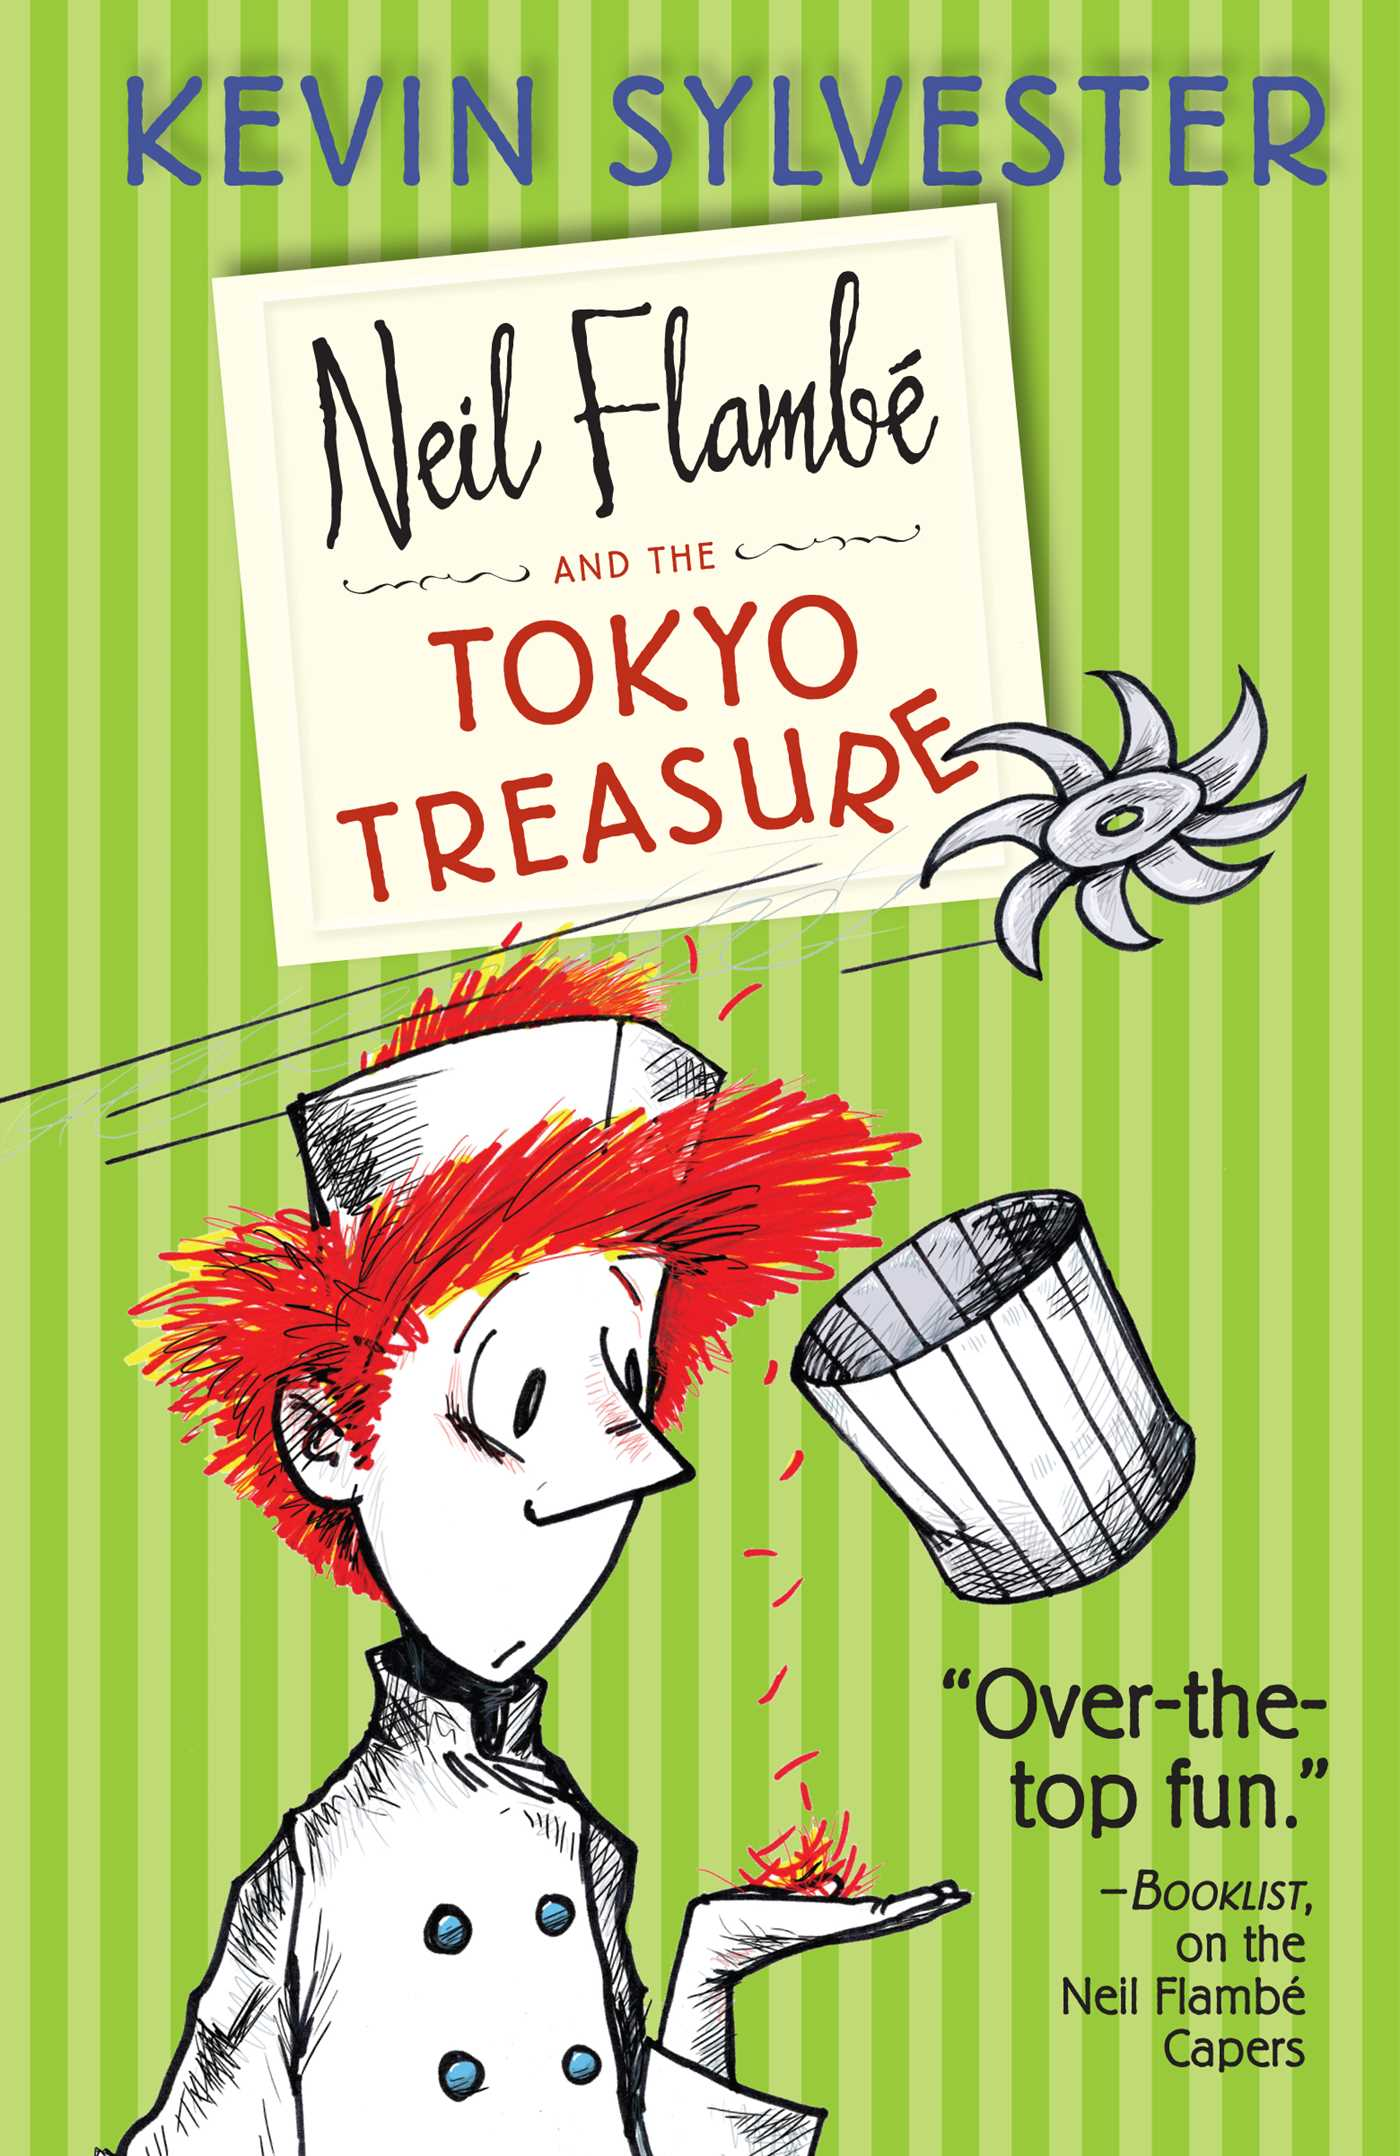 Neil flambe and the tokyo treasure 9781442442986 hr